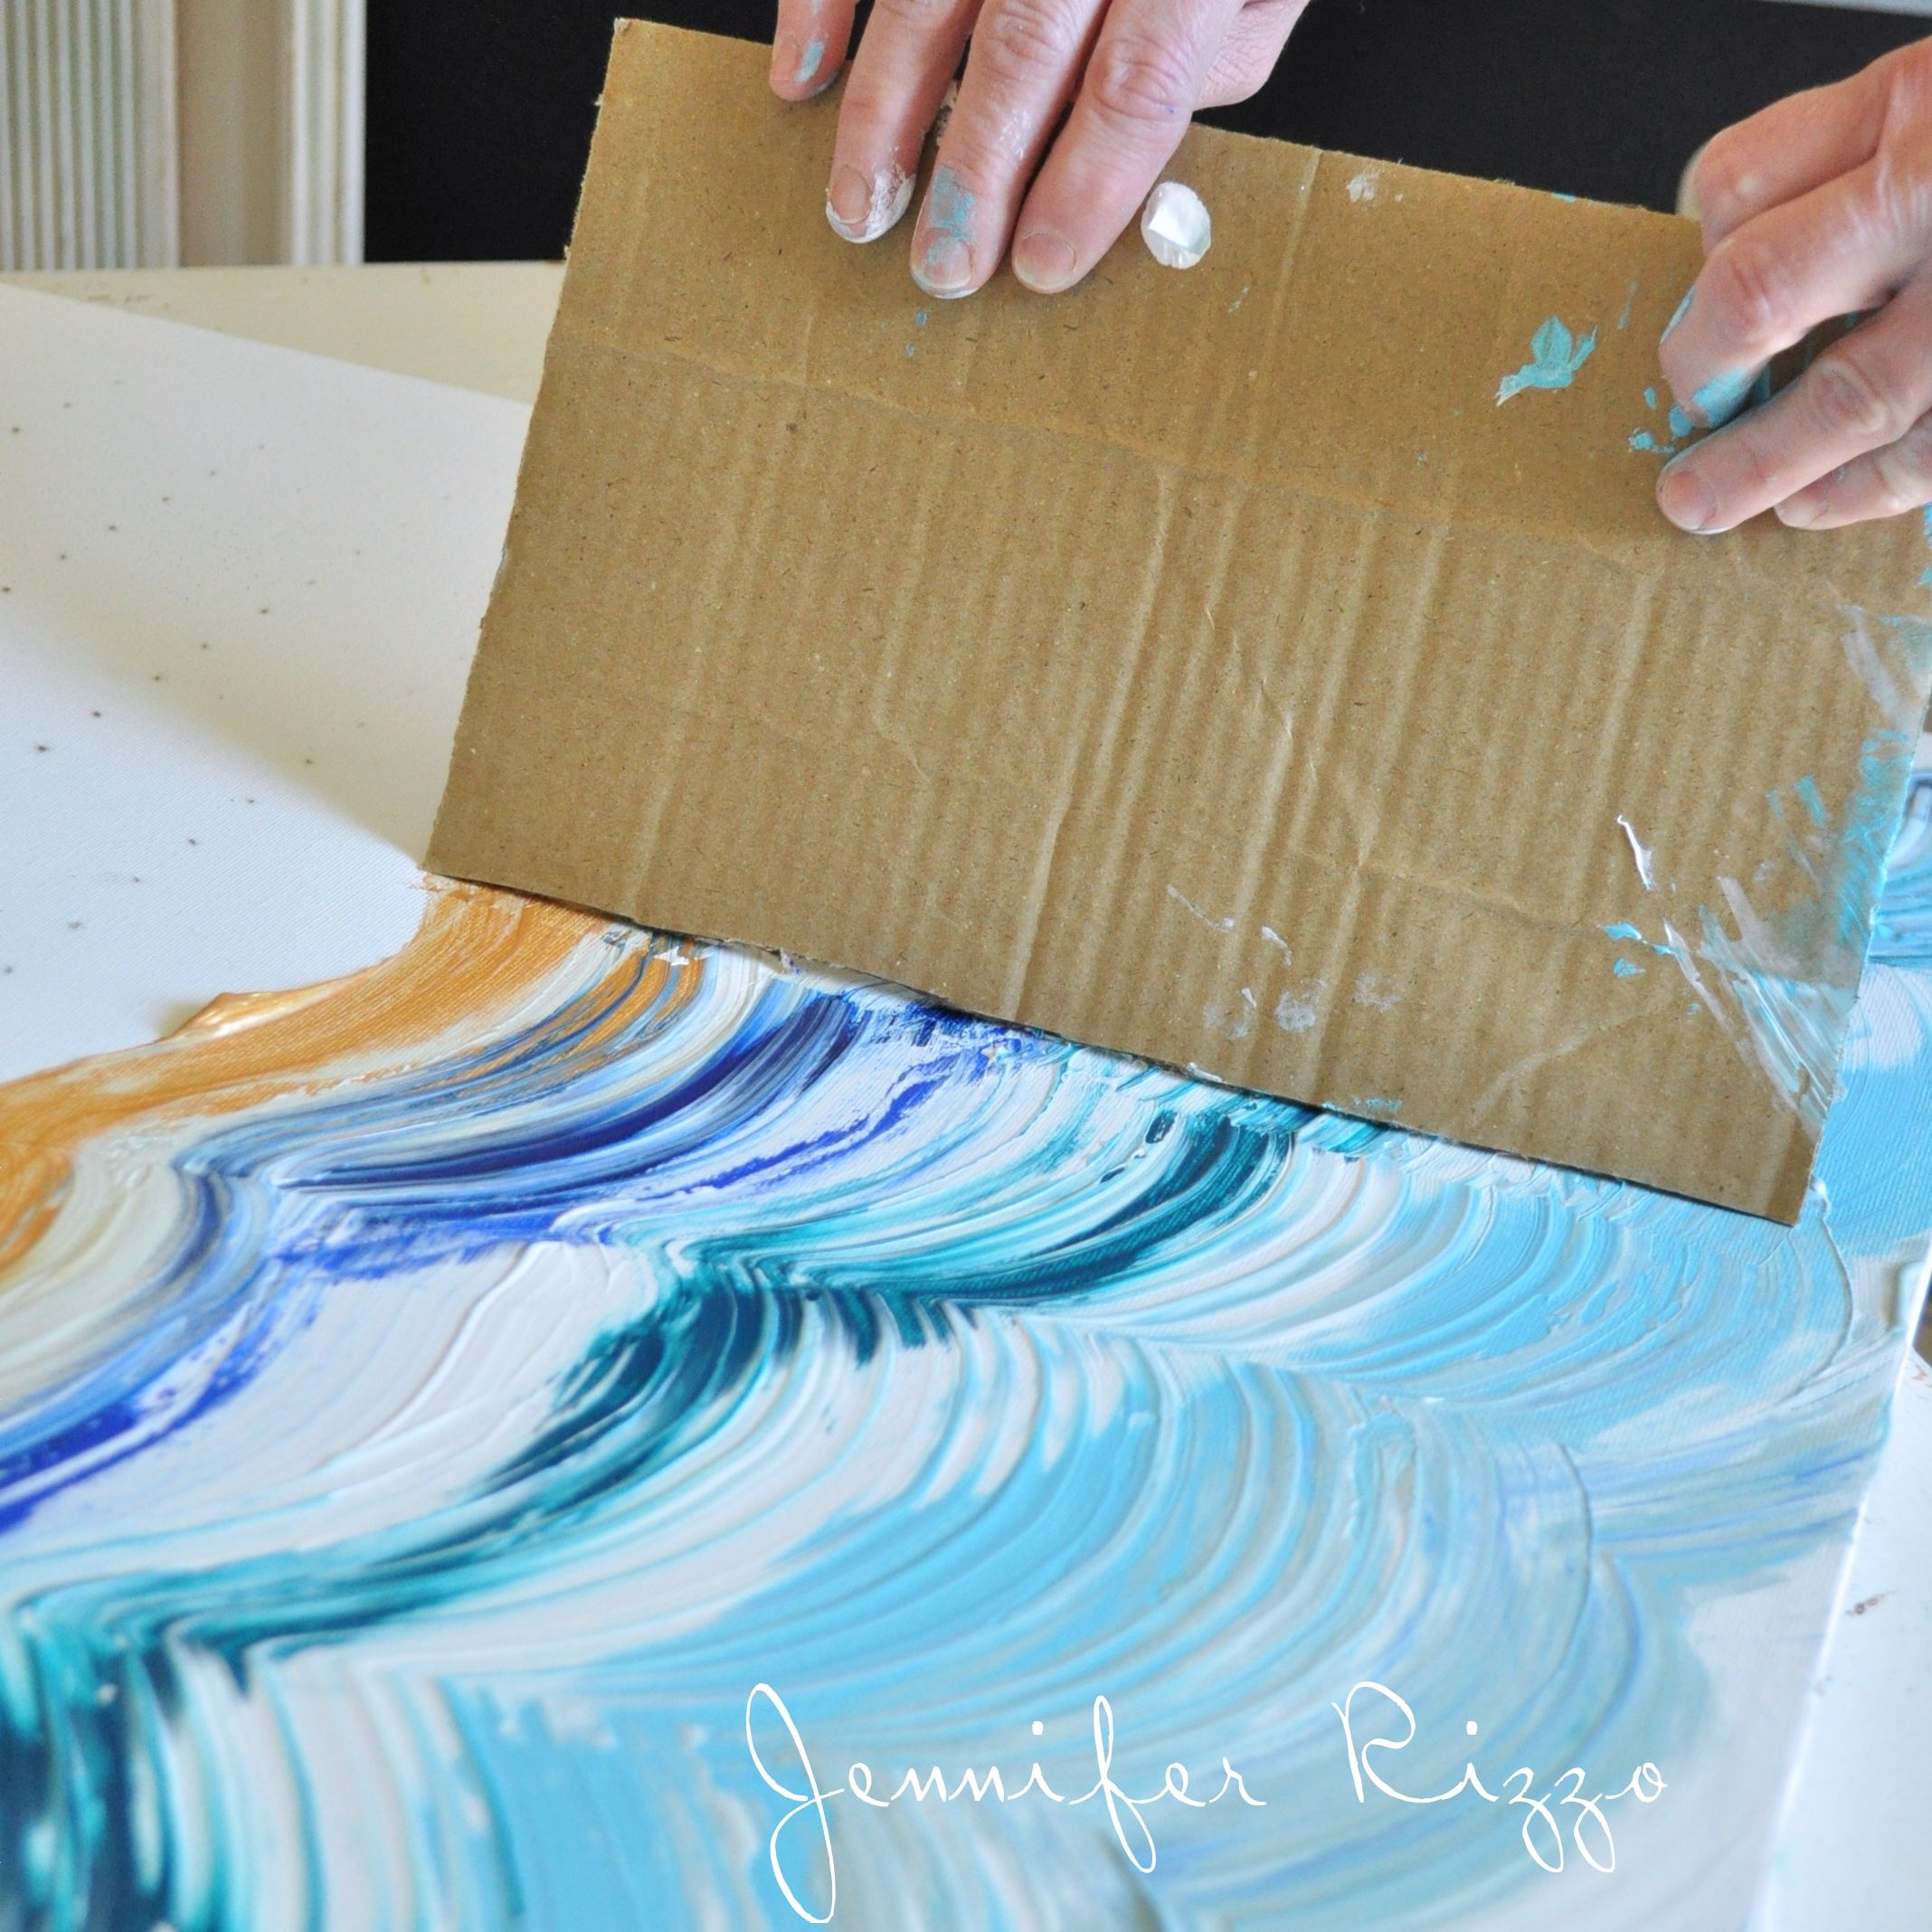 How to do a fun acrylic painting of an agate inspired pattern drag your card board across your paint to make your design a great way to make a striped or striated pattern solutioingenieria Image collections